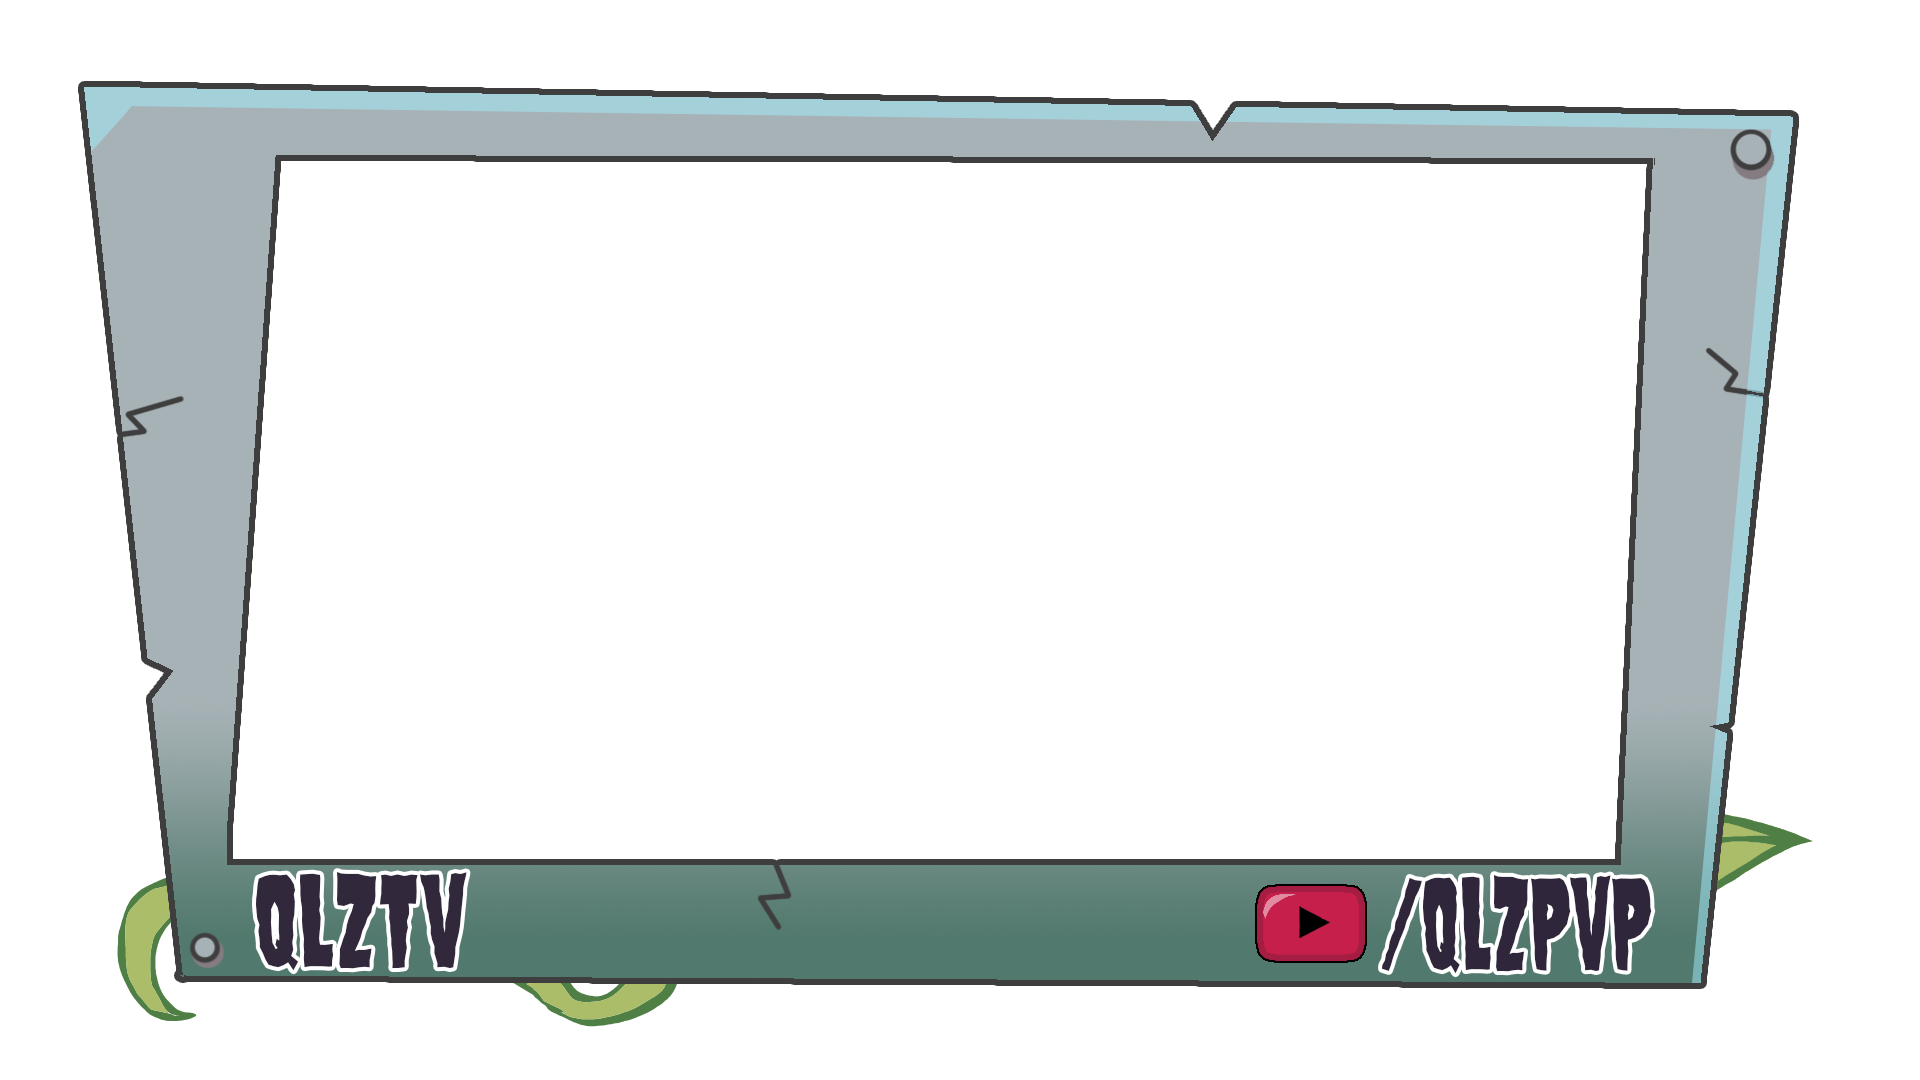 Webcam overlay png. Just made myself a